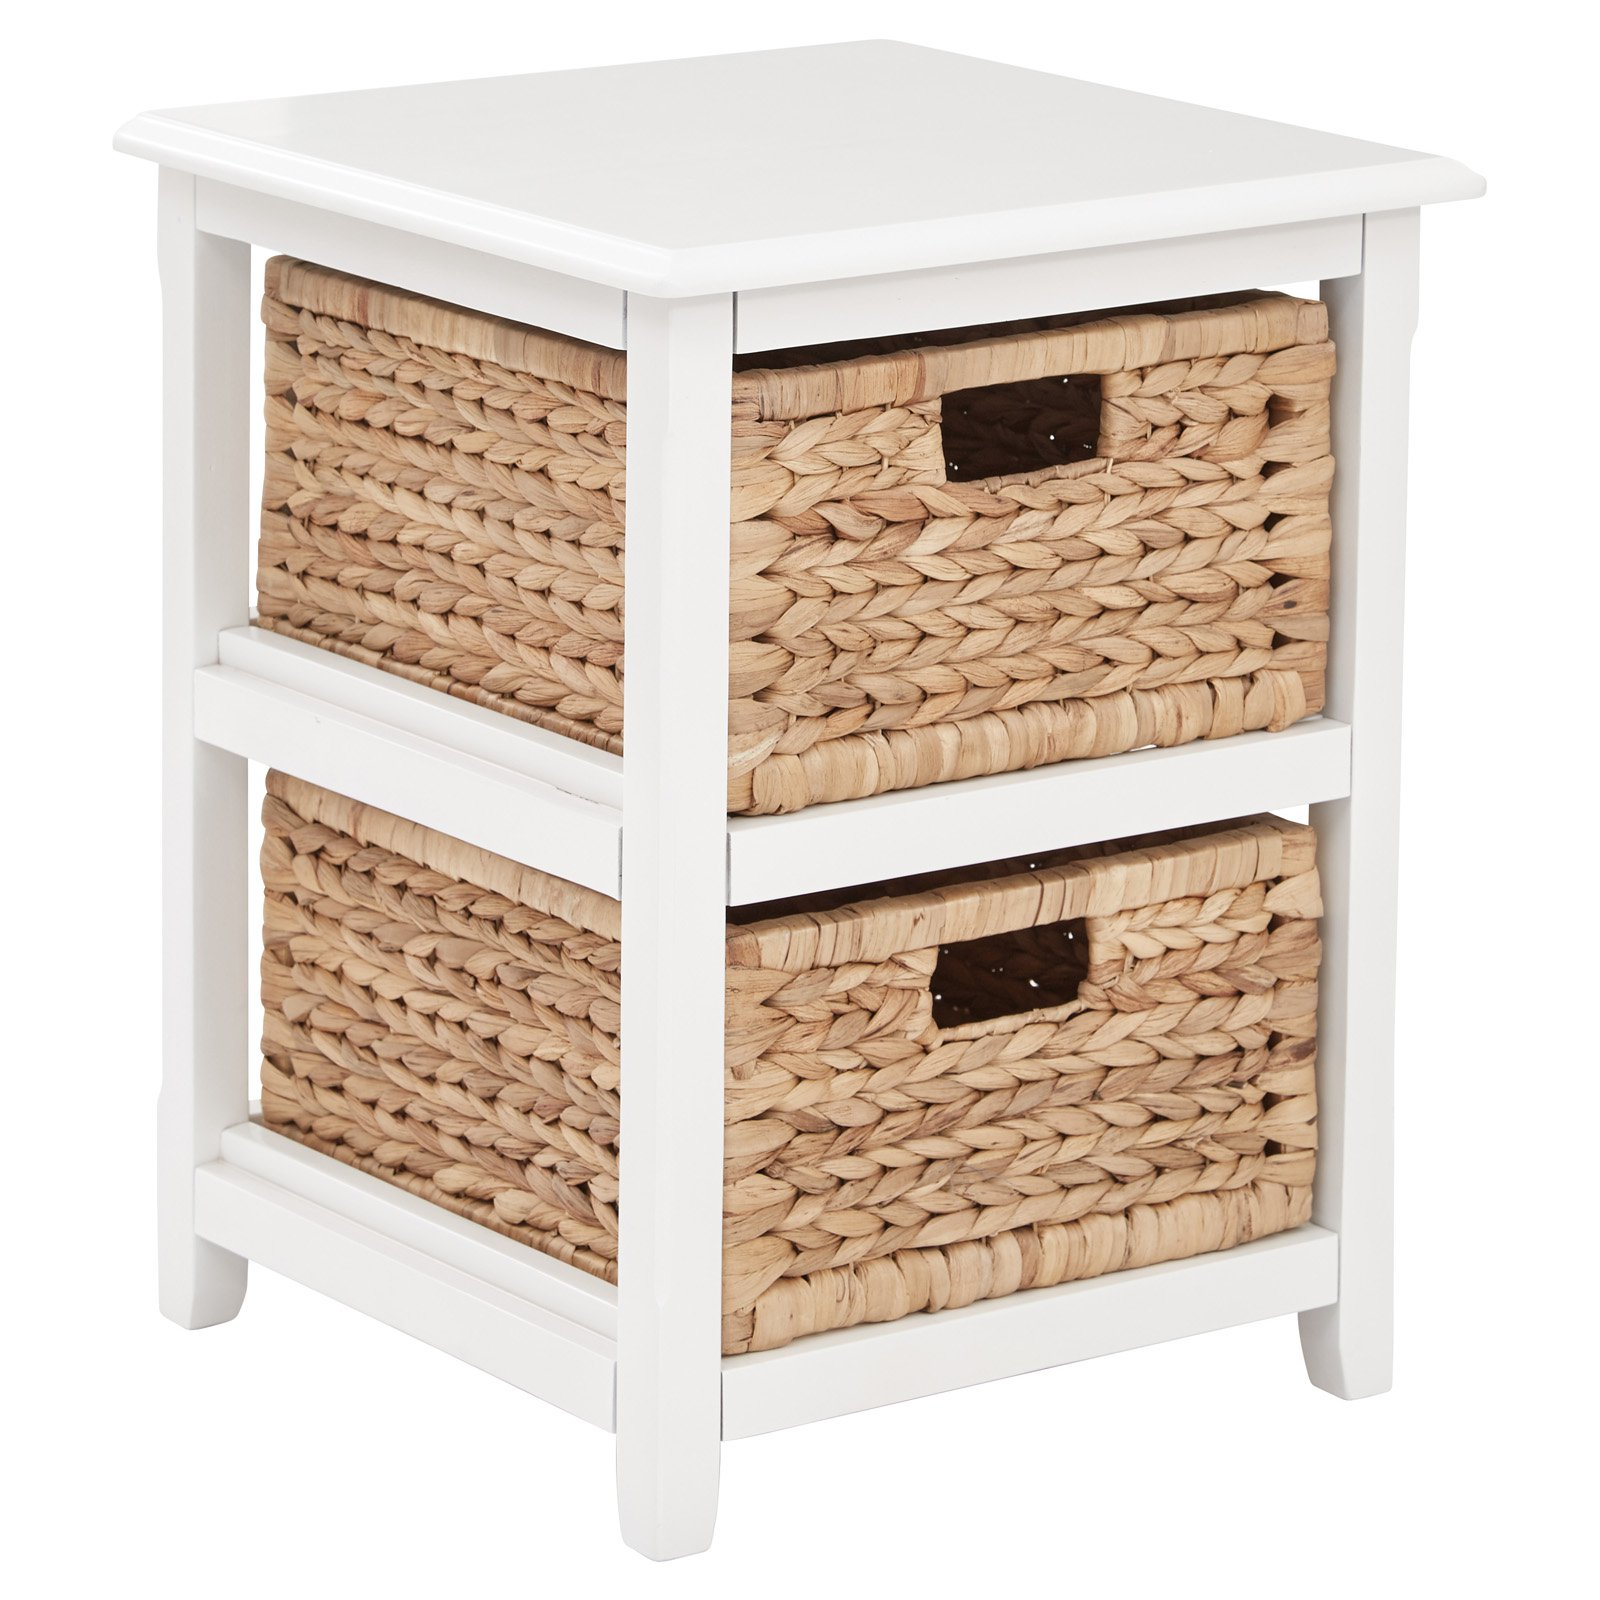 Seabrook 2-Tier Storage Unit